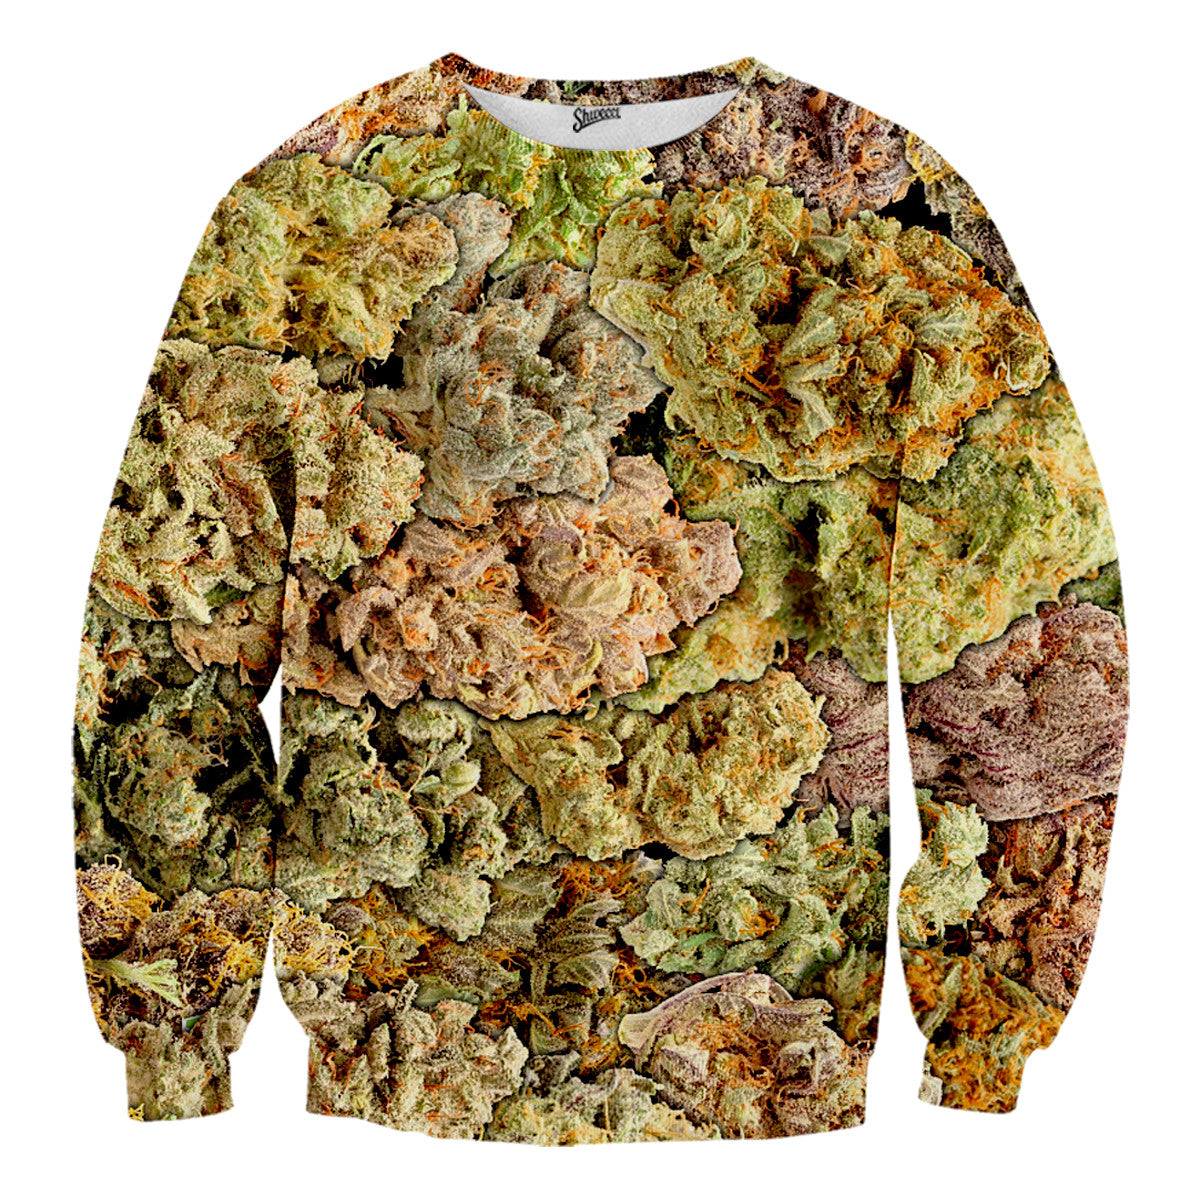 All Buds Sweater